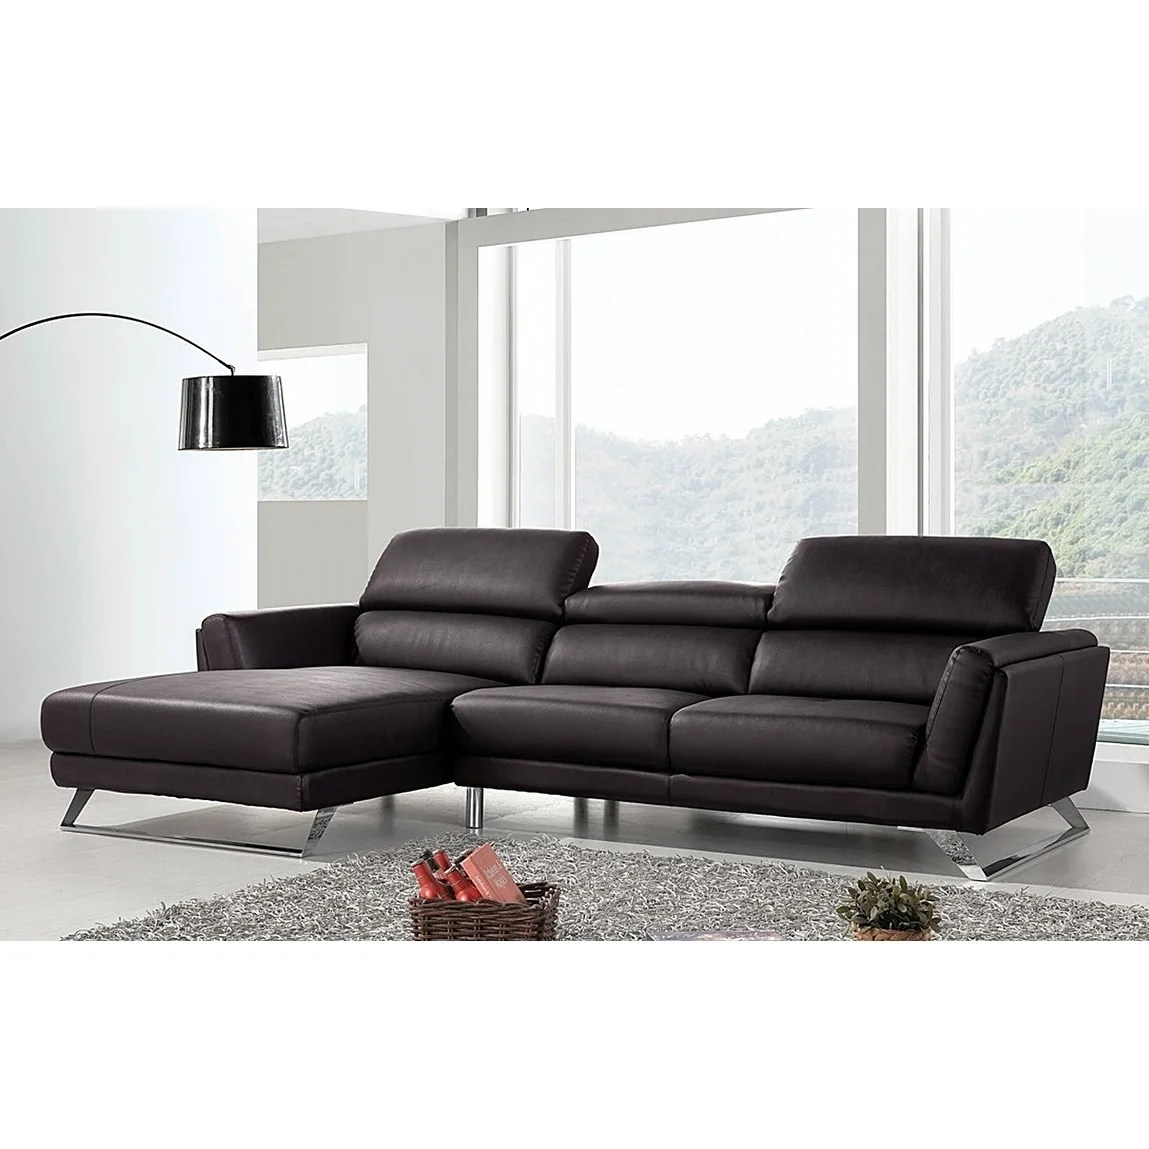 L Sofa Waldorf Modern Black Leather L Shaped Sofa With Adjustable Headrests